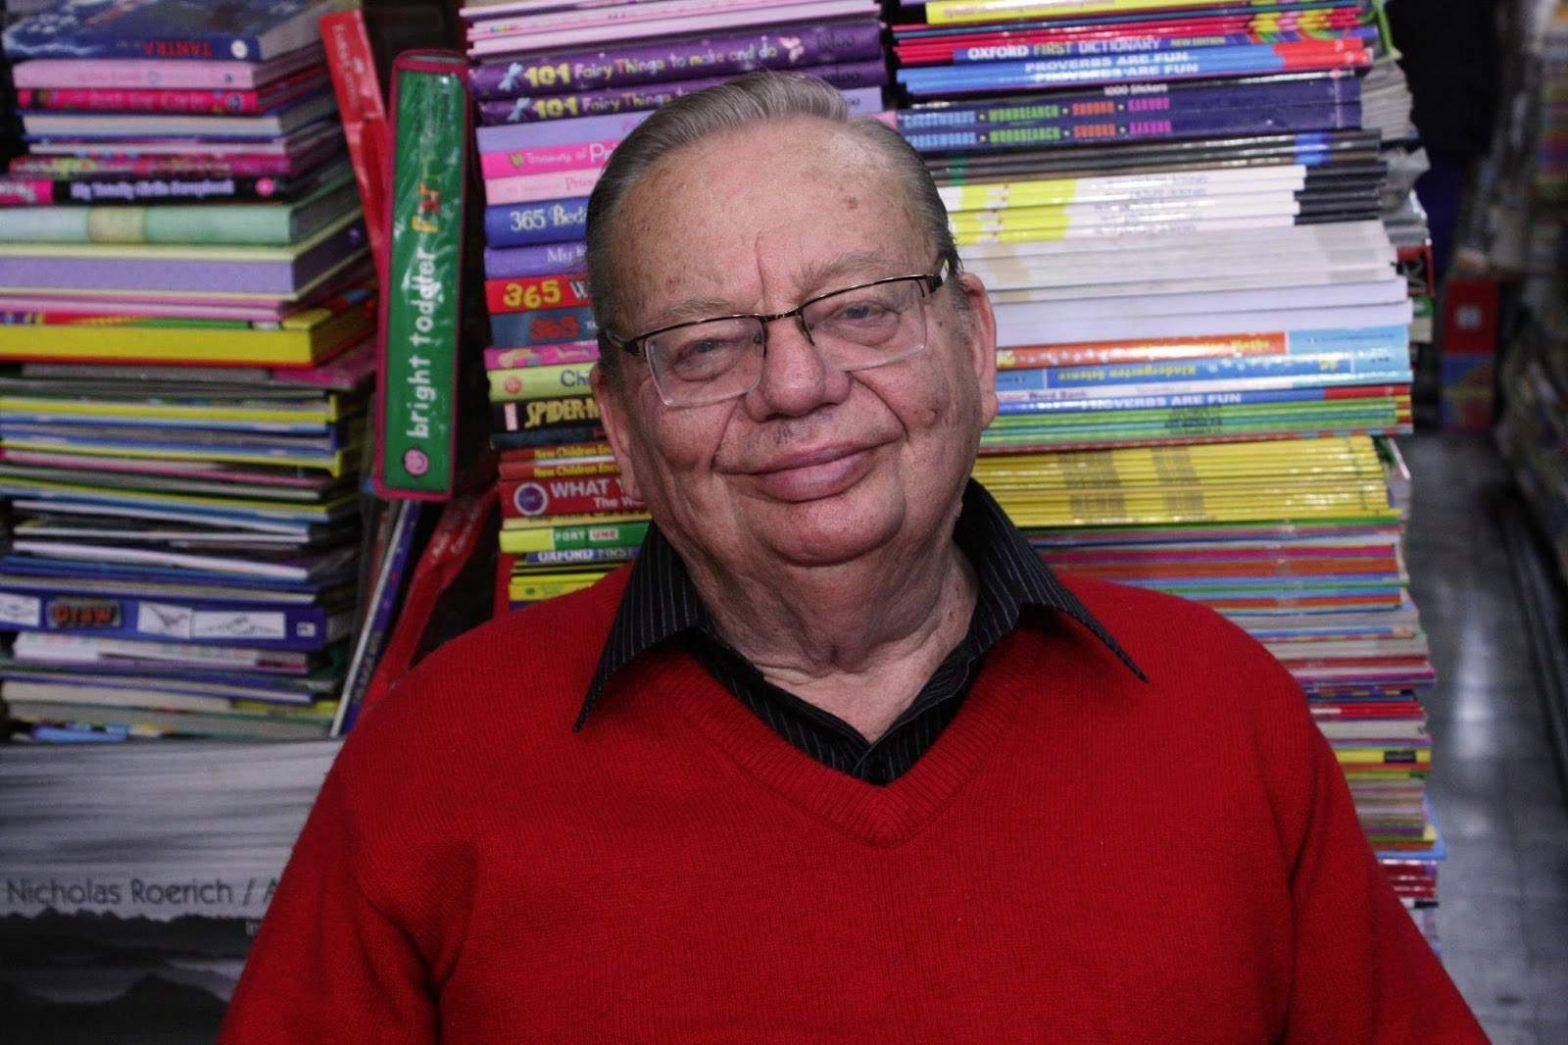 Ruskin Bond's new book released on his 86th birthday_40.1